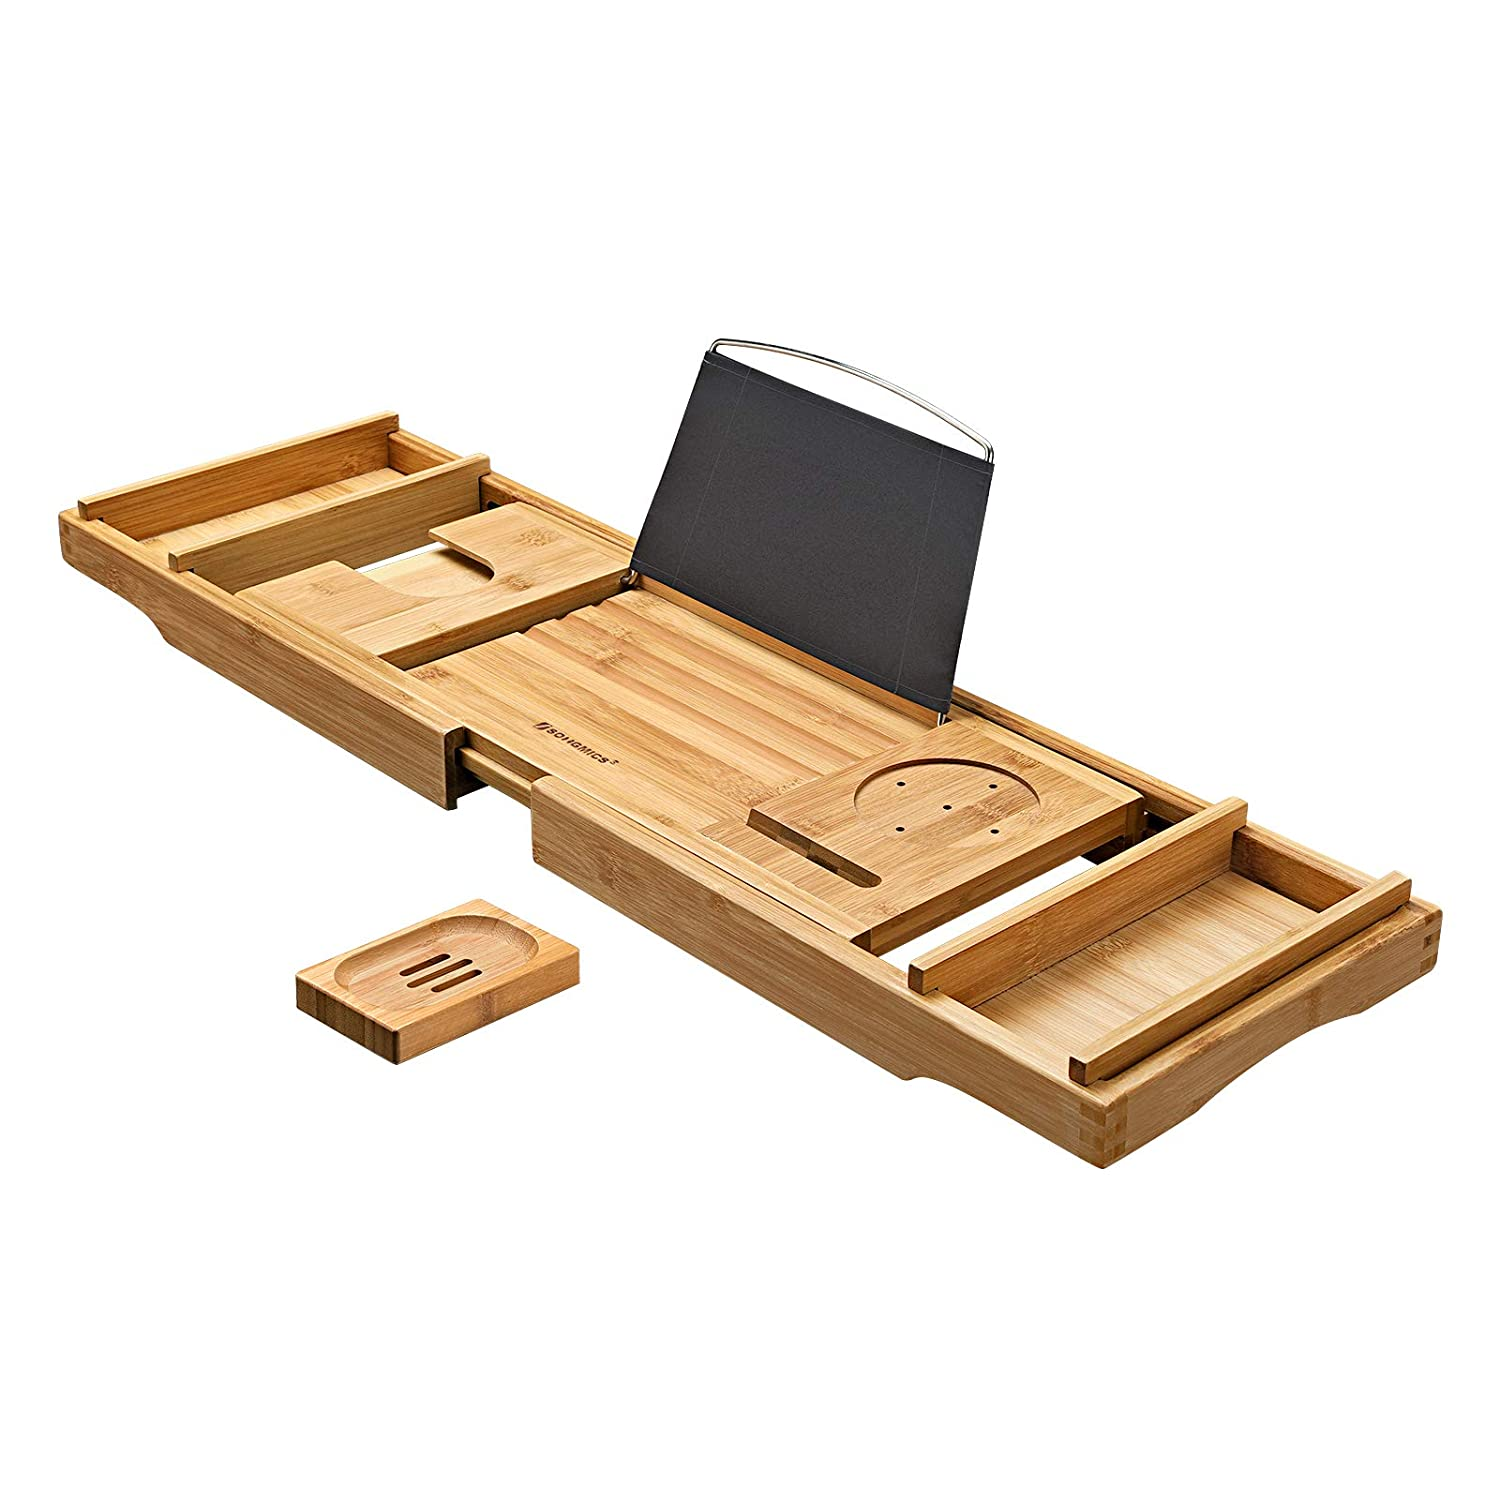 SONGMICS Luxury Extendable Bathtub Caddy Tray, Tub Shelf for Reading with Wine Holder, One or Two Person Bath and Bed Tray, with Free Soap Tray Natural Bamboo UBCB88Y